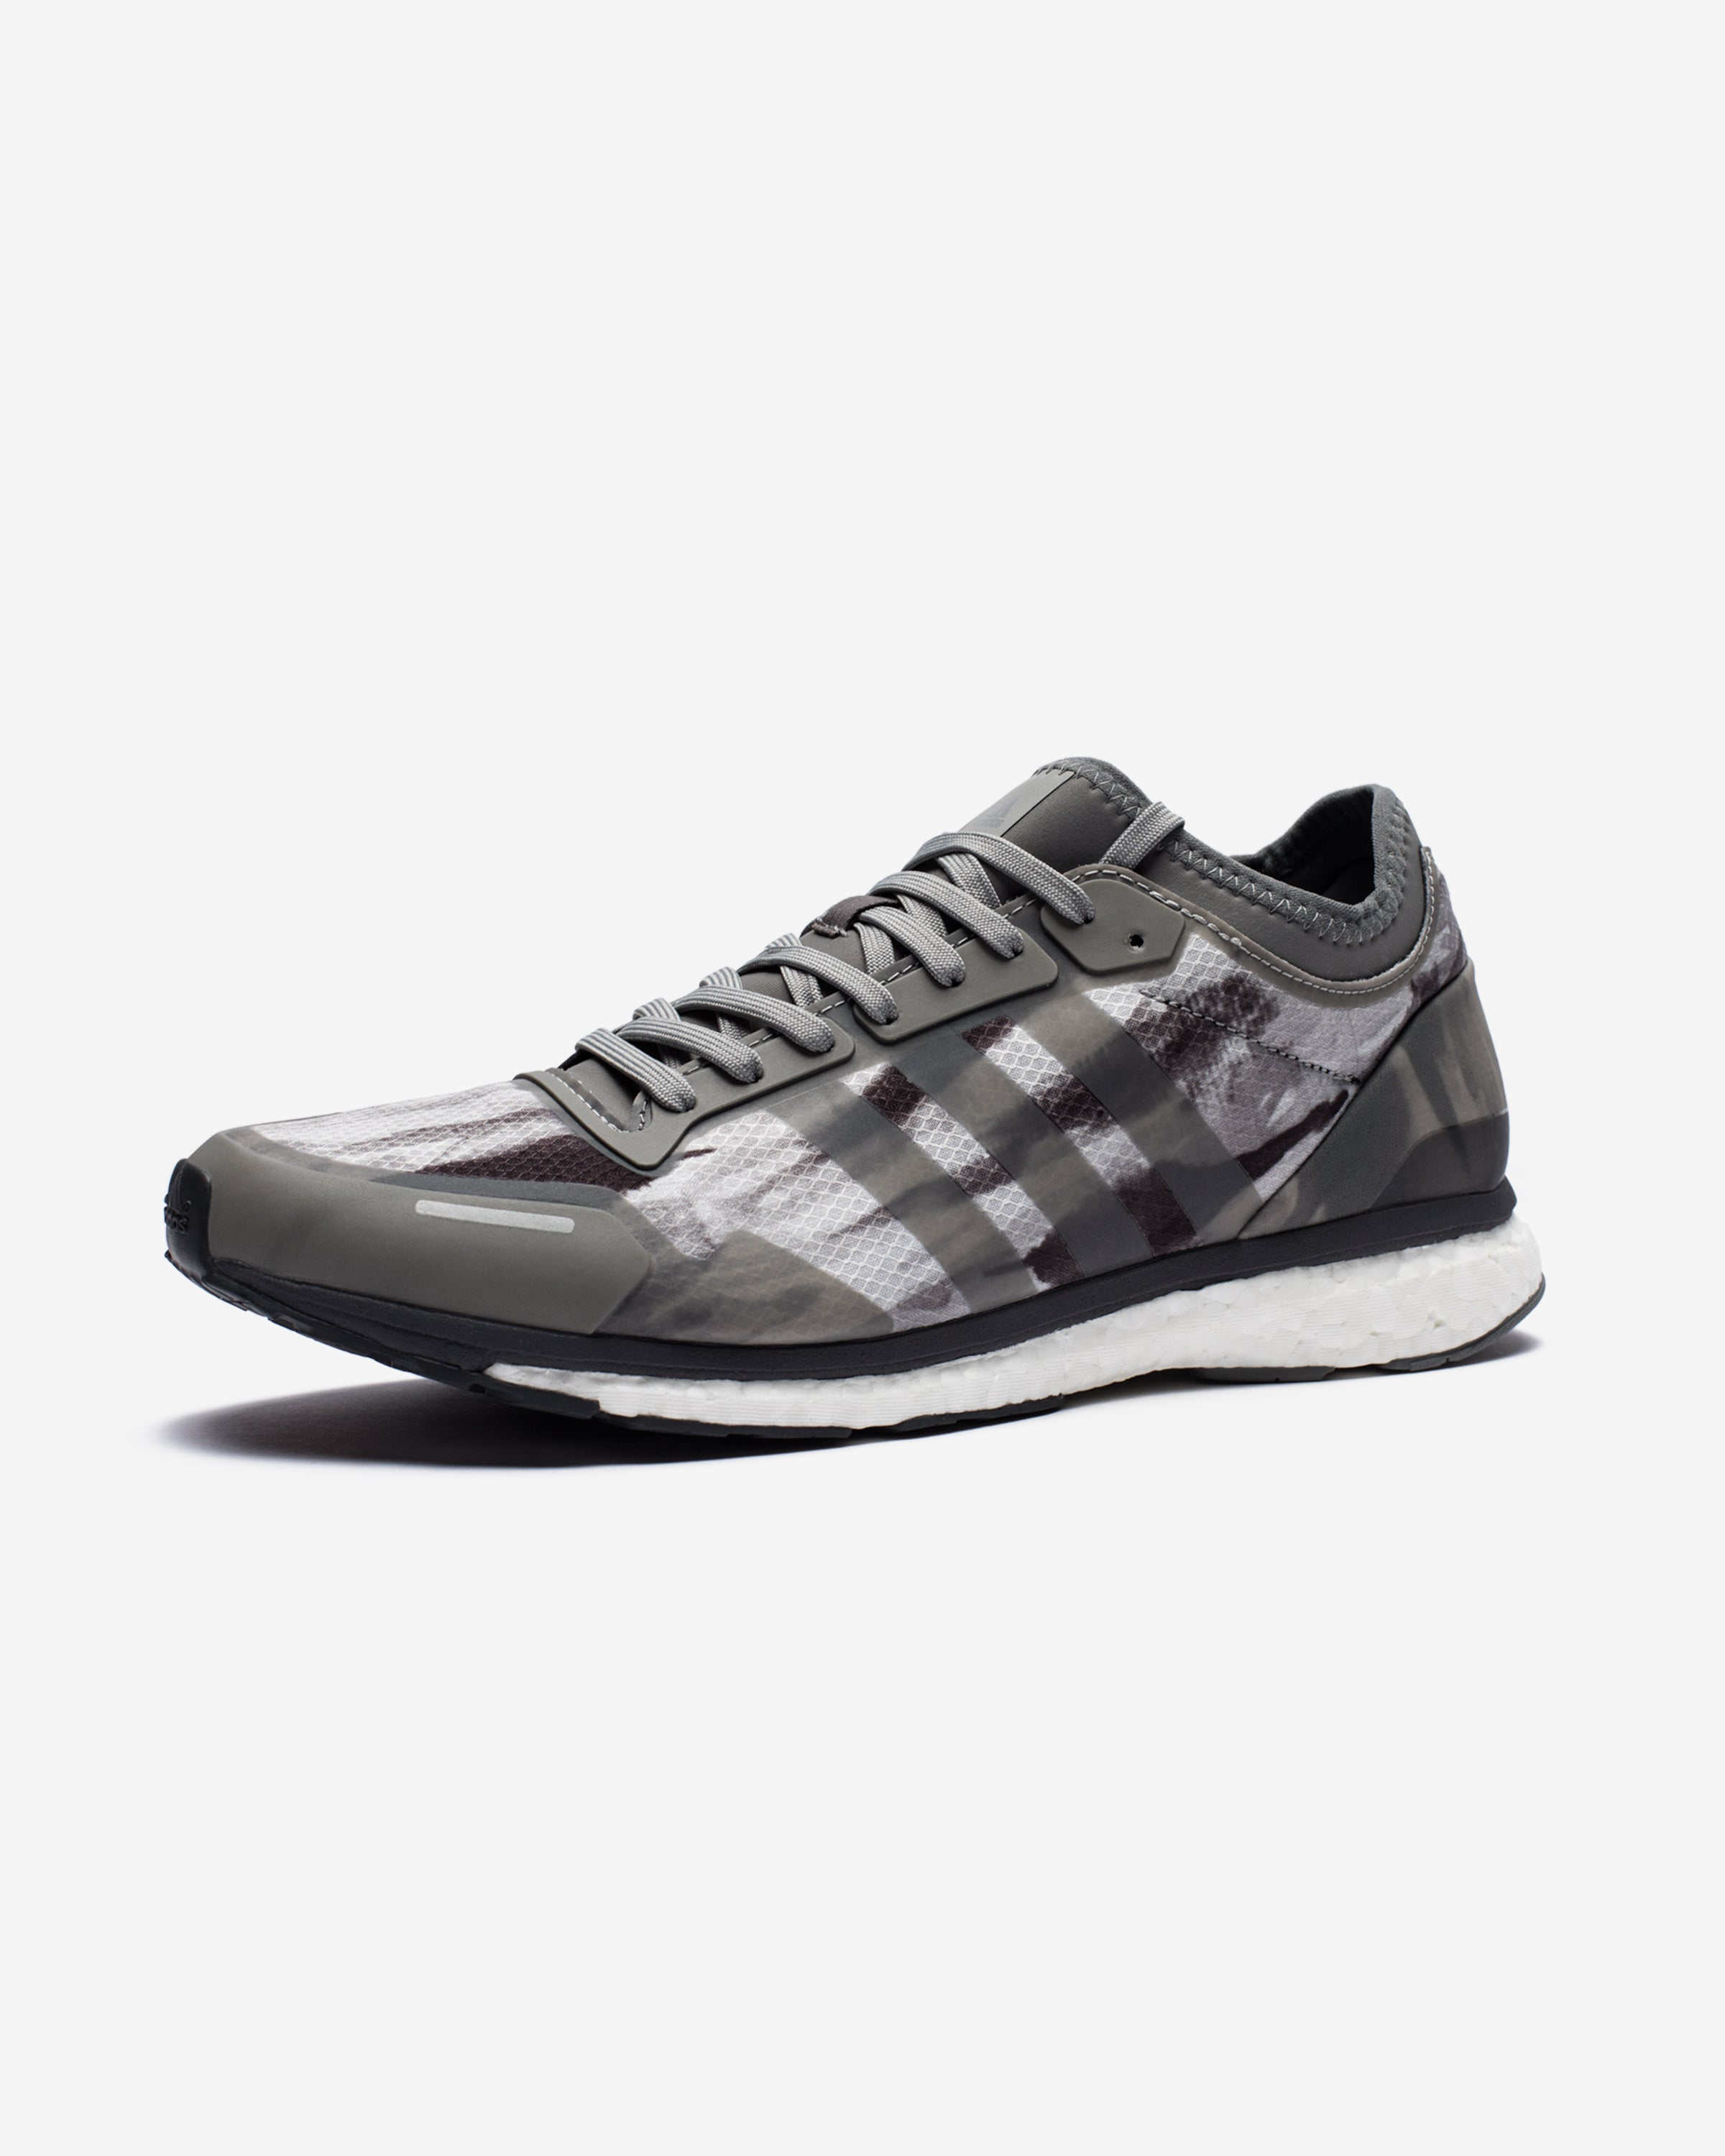 nike 97 herren undefeated air max fly kit